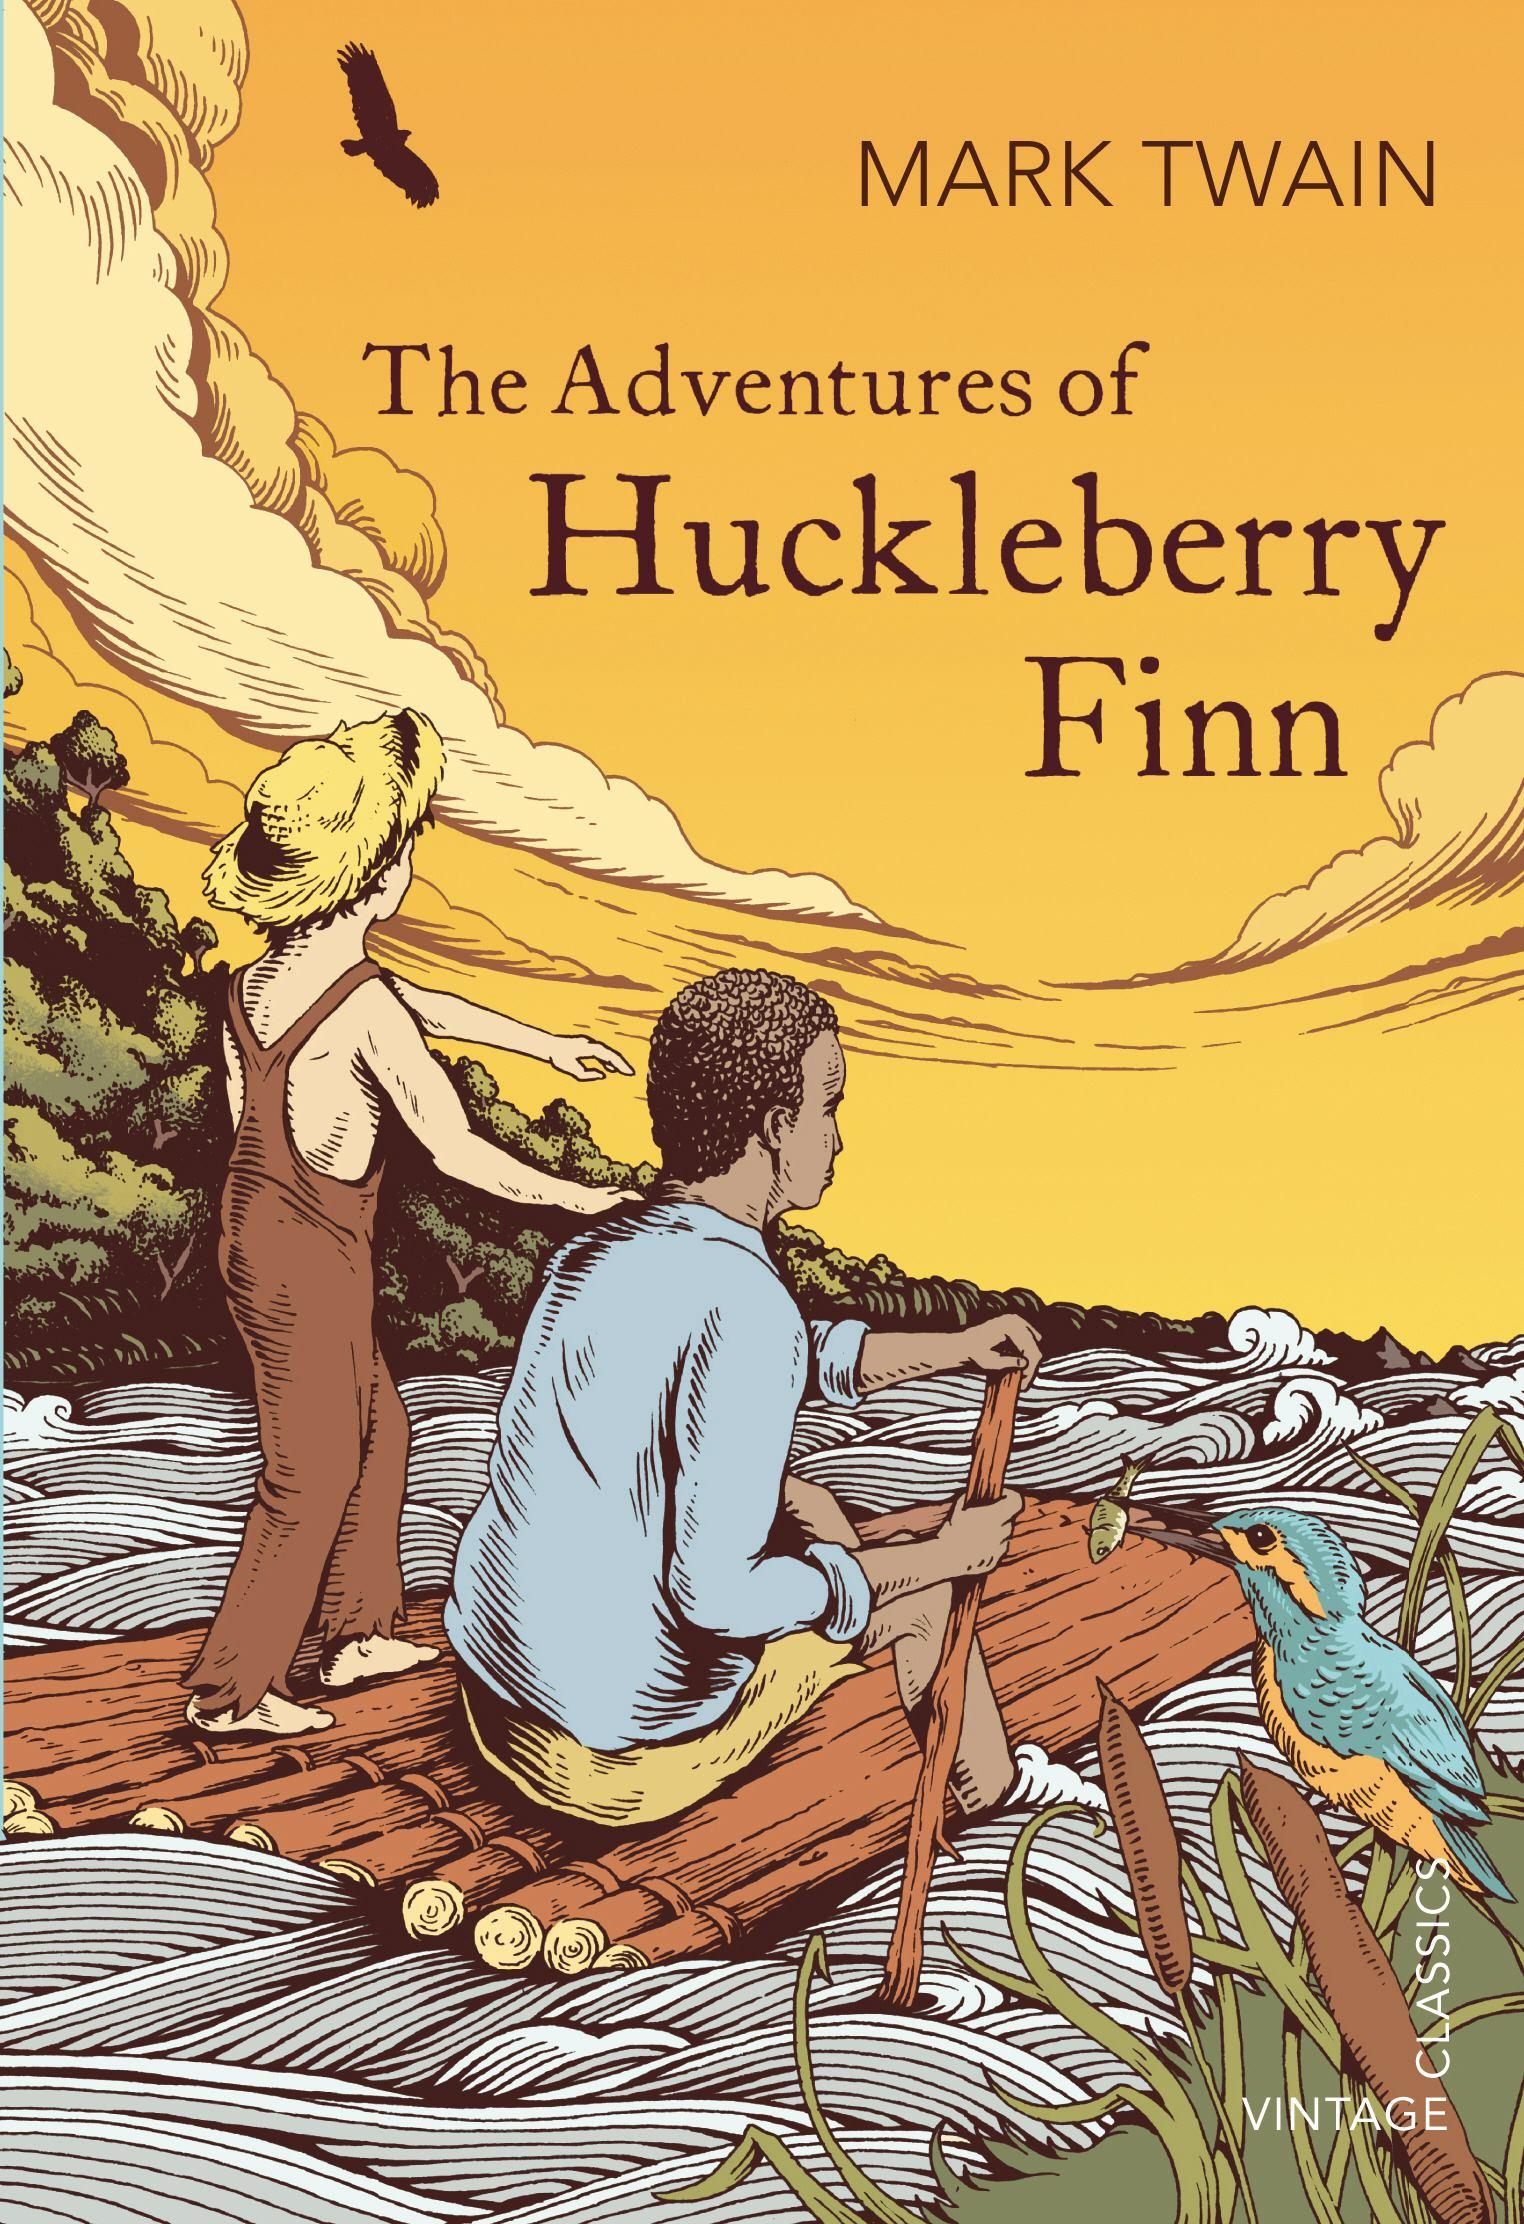 the adventures of huckleberry finn 27 essay While huckleberry finn is a novel obsessed with race, however, it is also a novel obsessed with the absence of race huck and jim find happiness only on jackson's island, the site of their first meeting, where the two manage to briefly transcend race altogether.